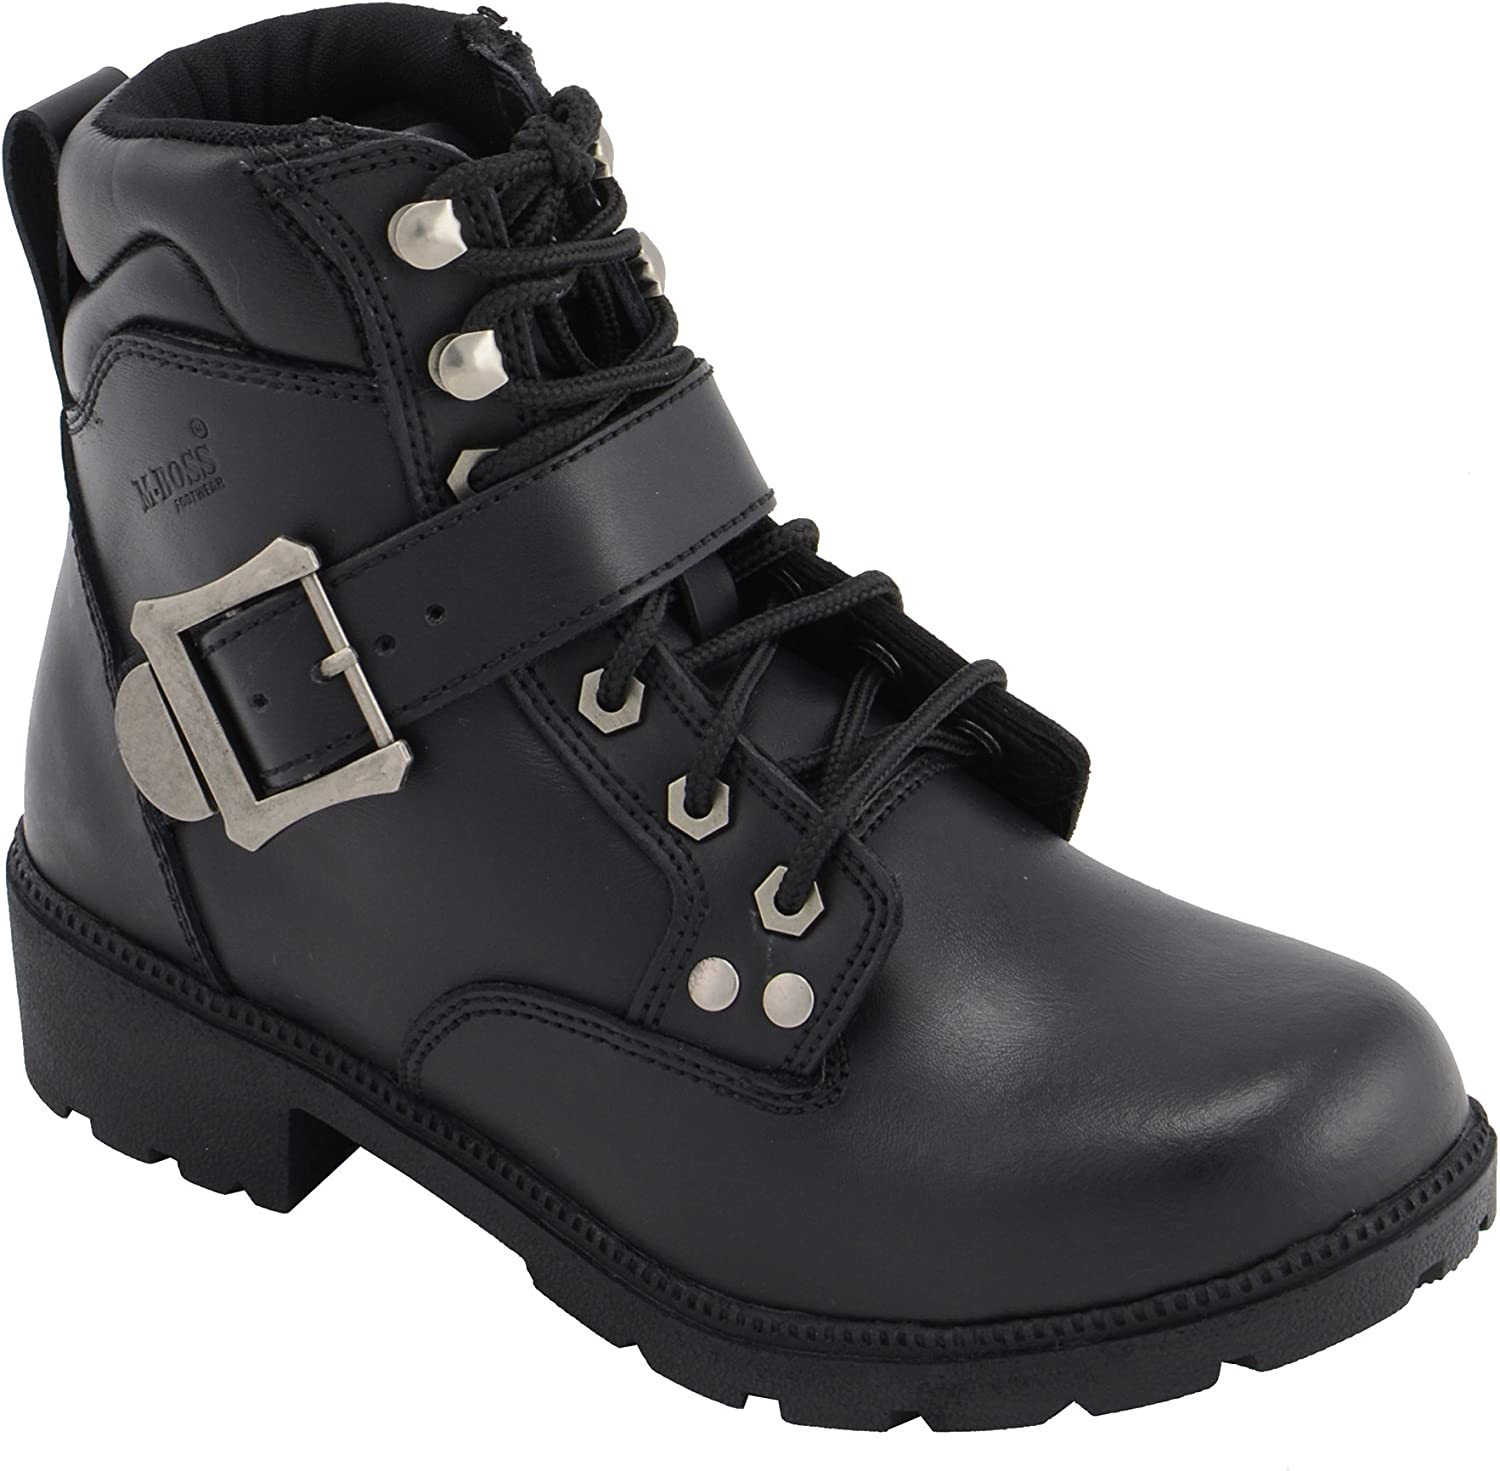 M Boss Motorcycle Apparel BOS49301 Ladies 7 Inch Black Road Captain Leather Motorcycle Boots 9.5